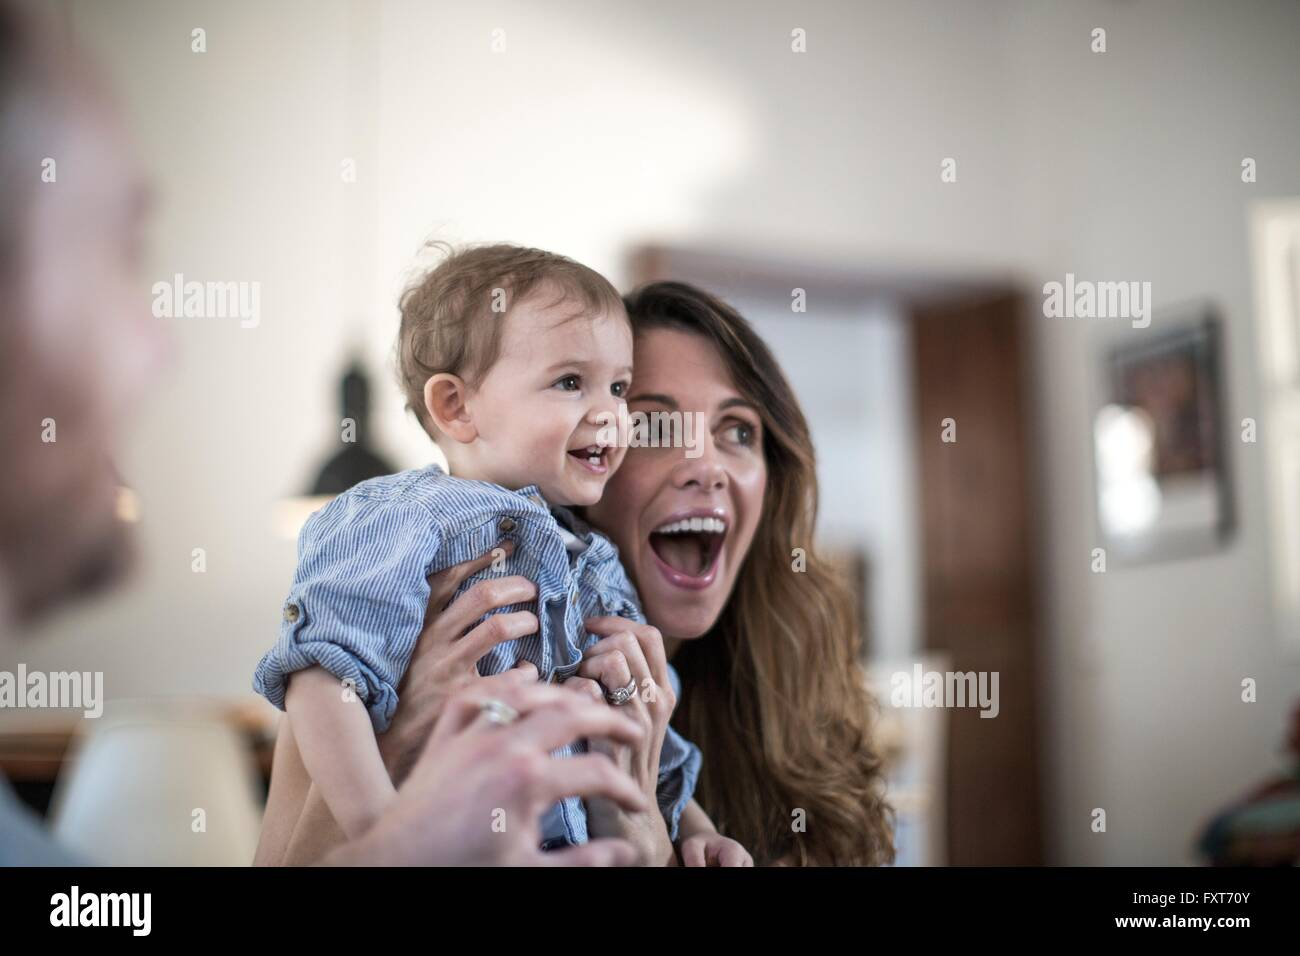 Mother holding smiling baby boy, open mouthed in surprise - Stock Image